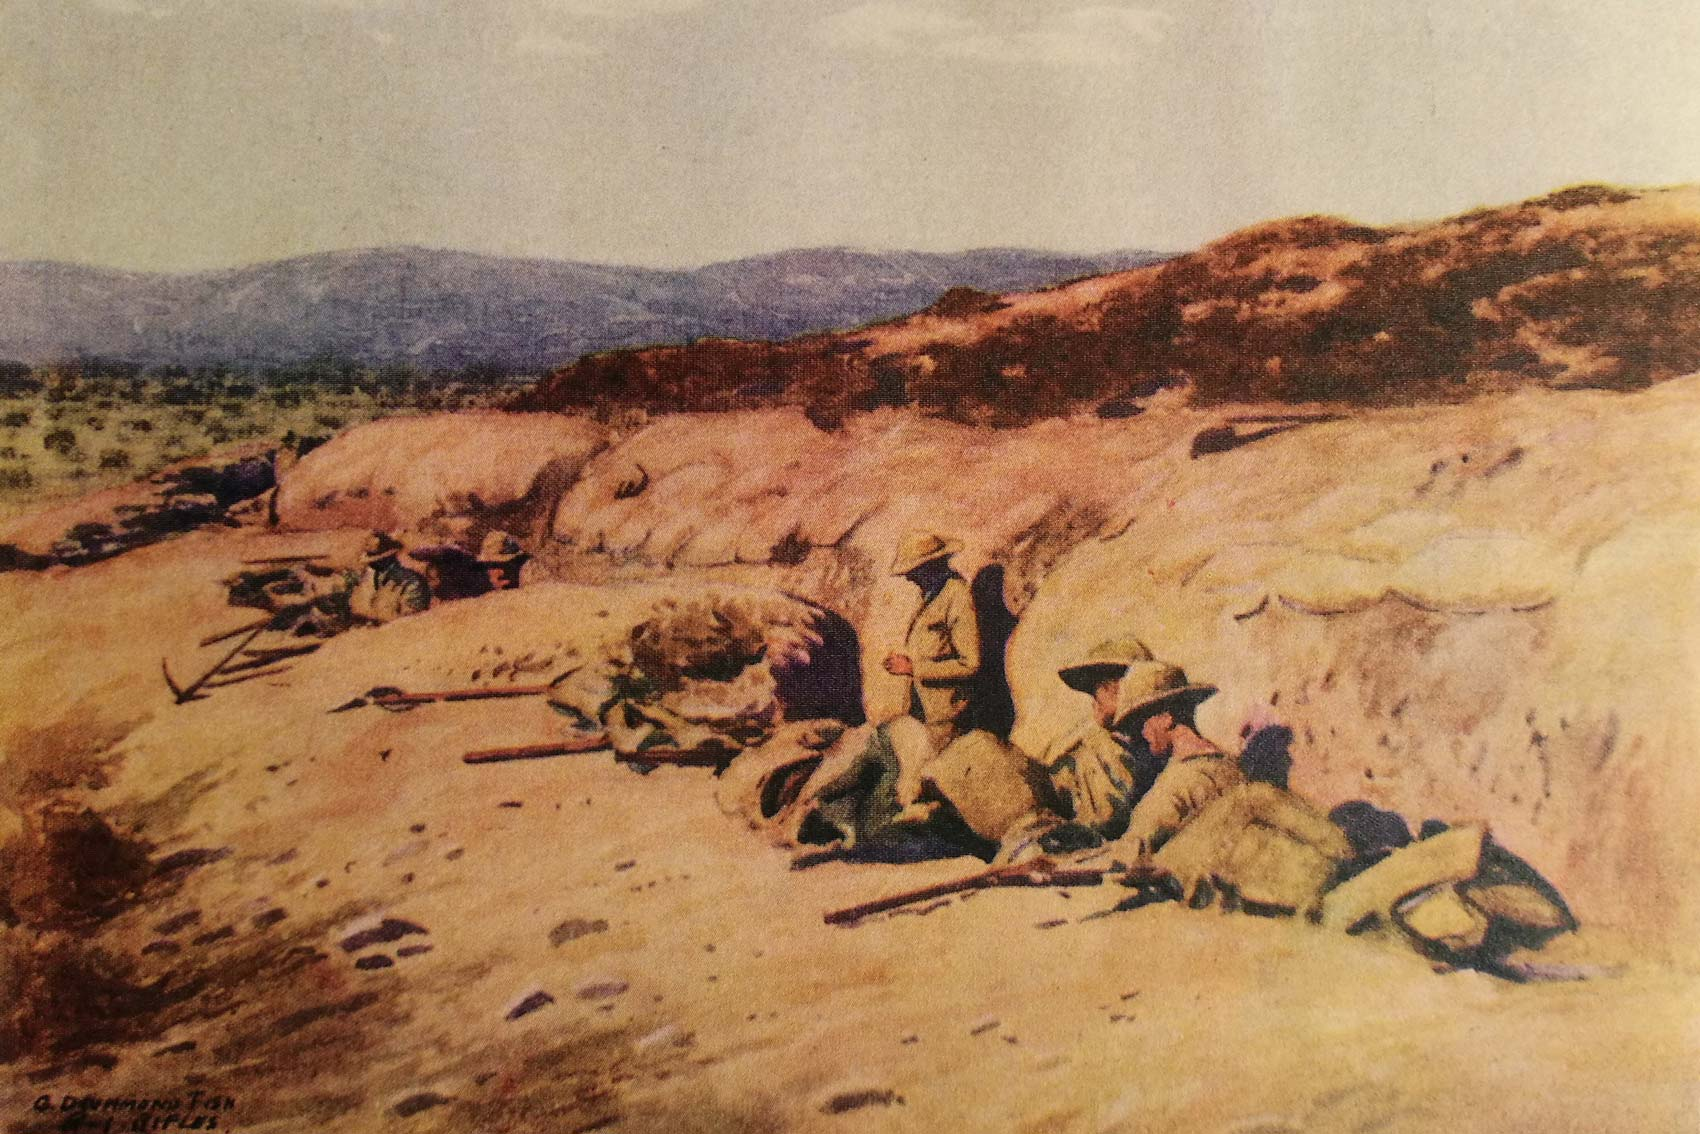 Irish war experience recounted in two new books